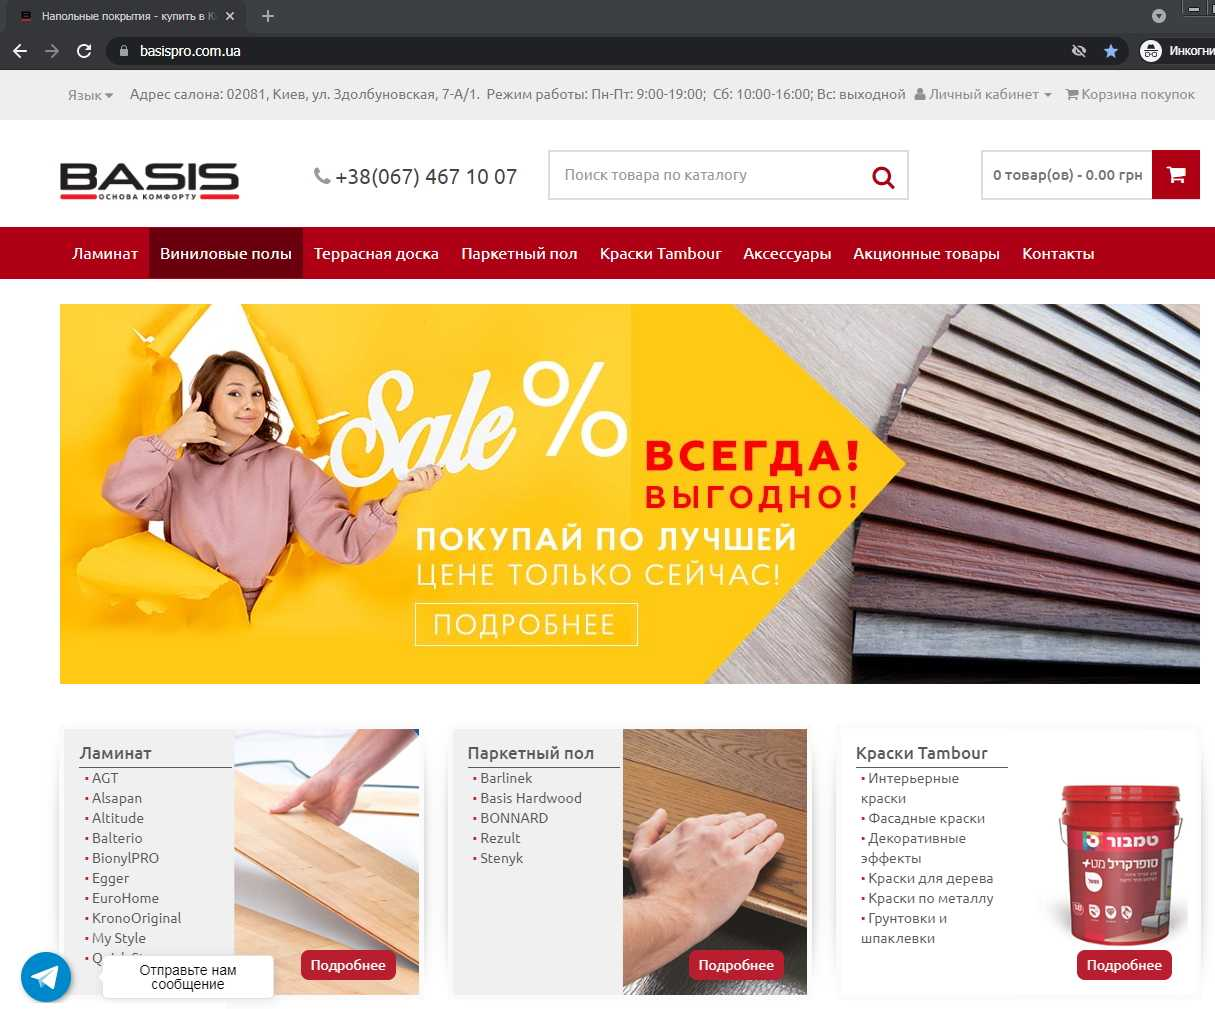 Development of advertising banners for the site basispro.com.ua (new season)